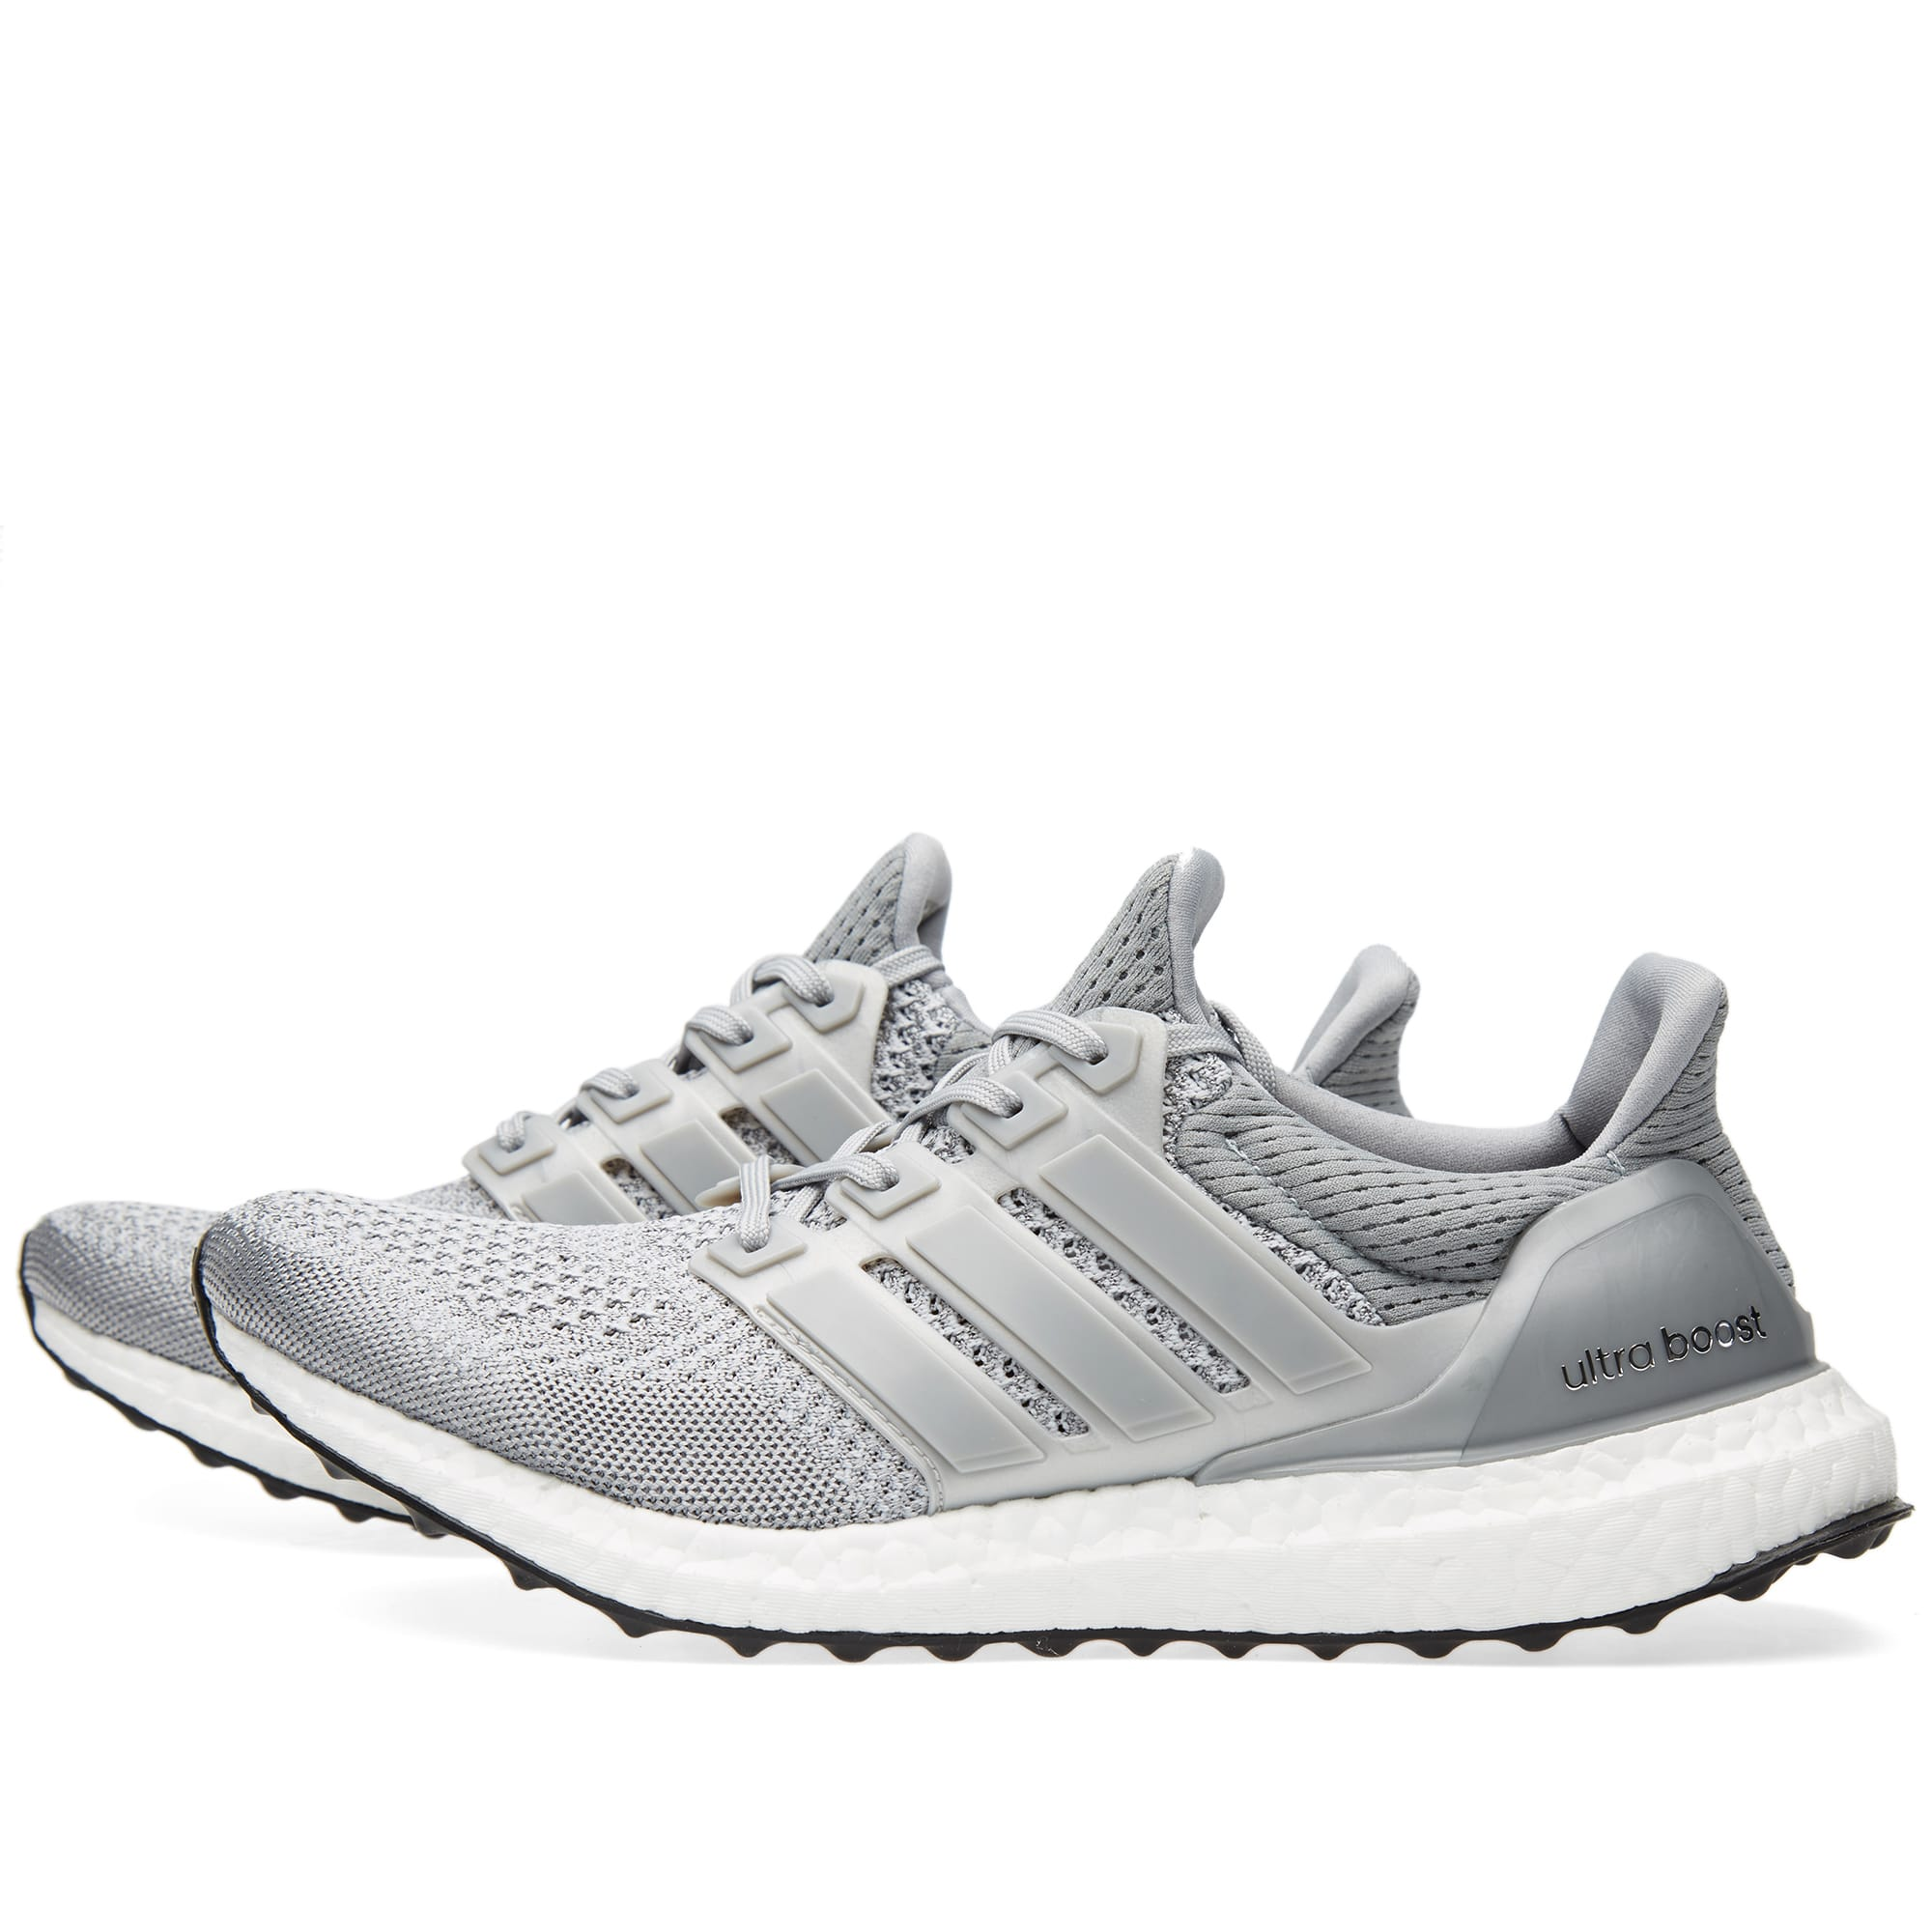 new products cbe36 8de40 Adidas Ultra Boost Ltd. Silver Metallic   END.